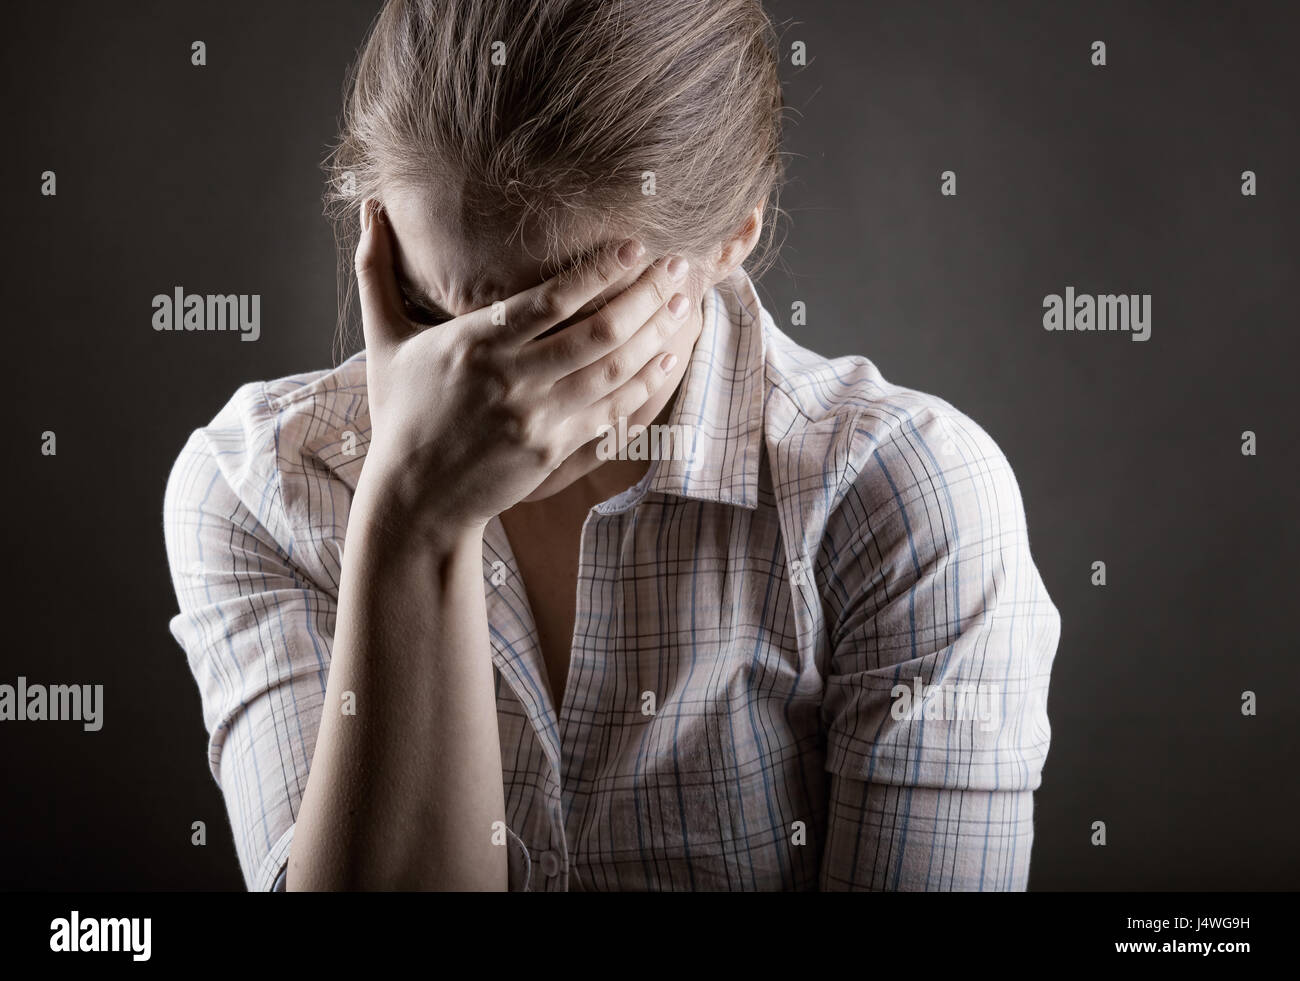 Young crying woman on a dark background - Stock Image